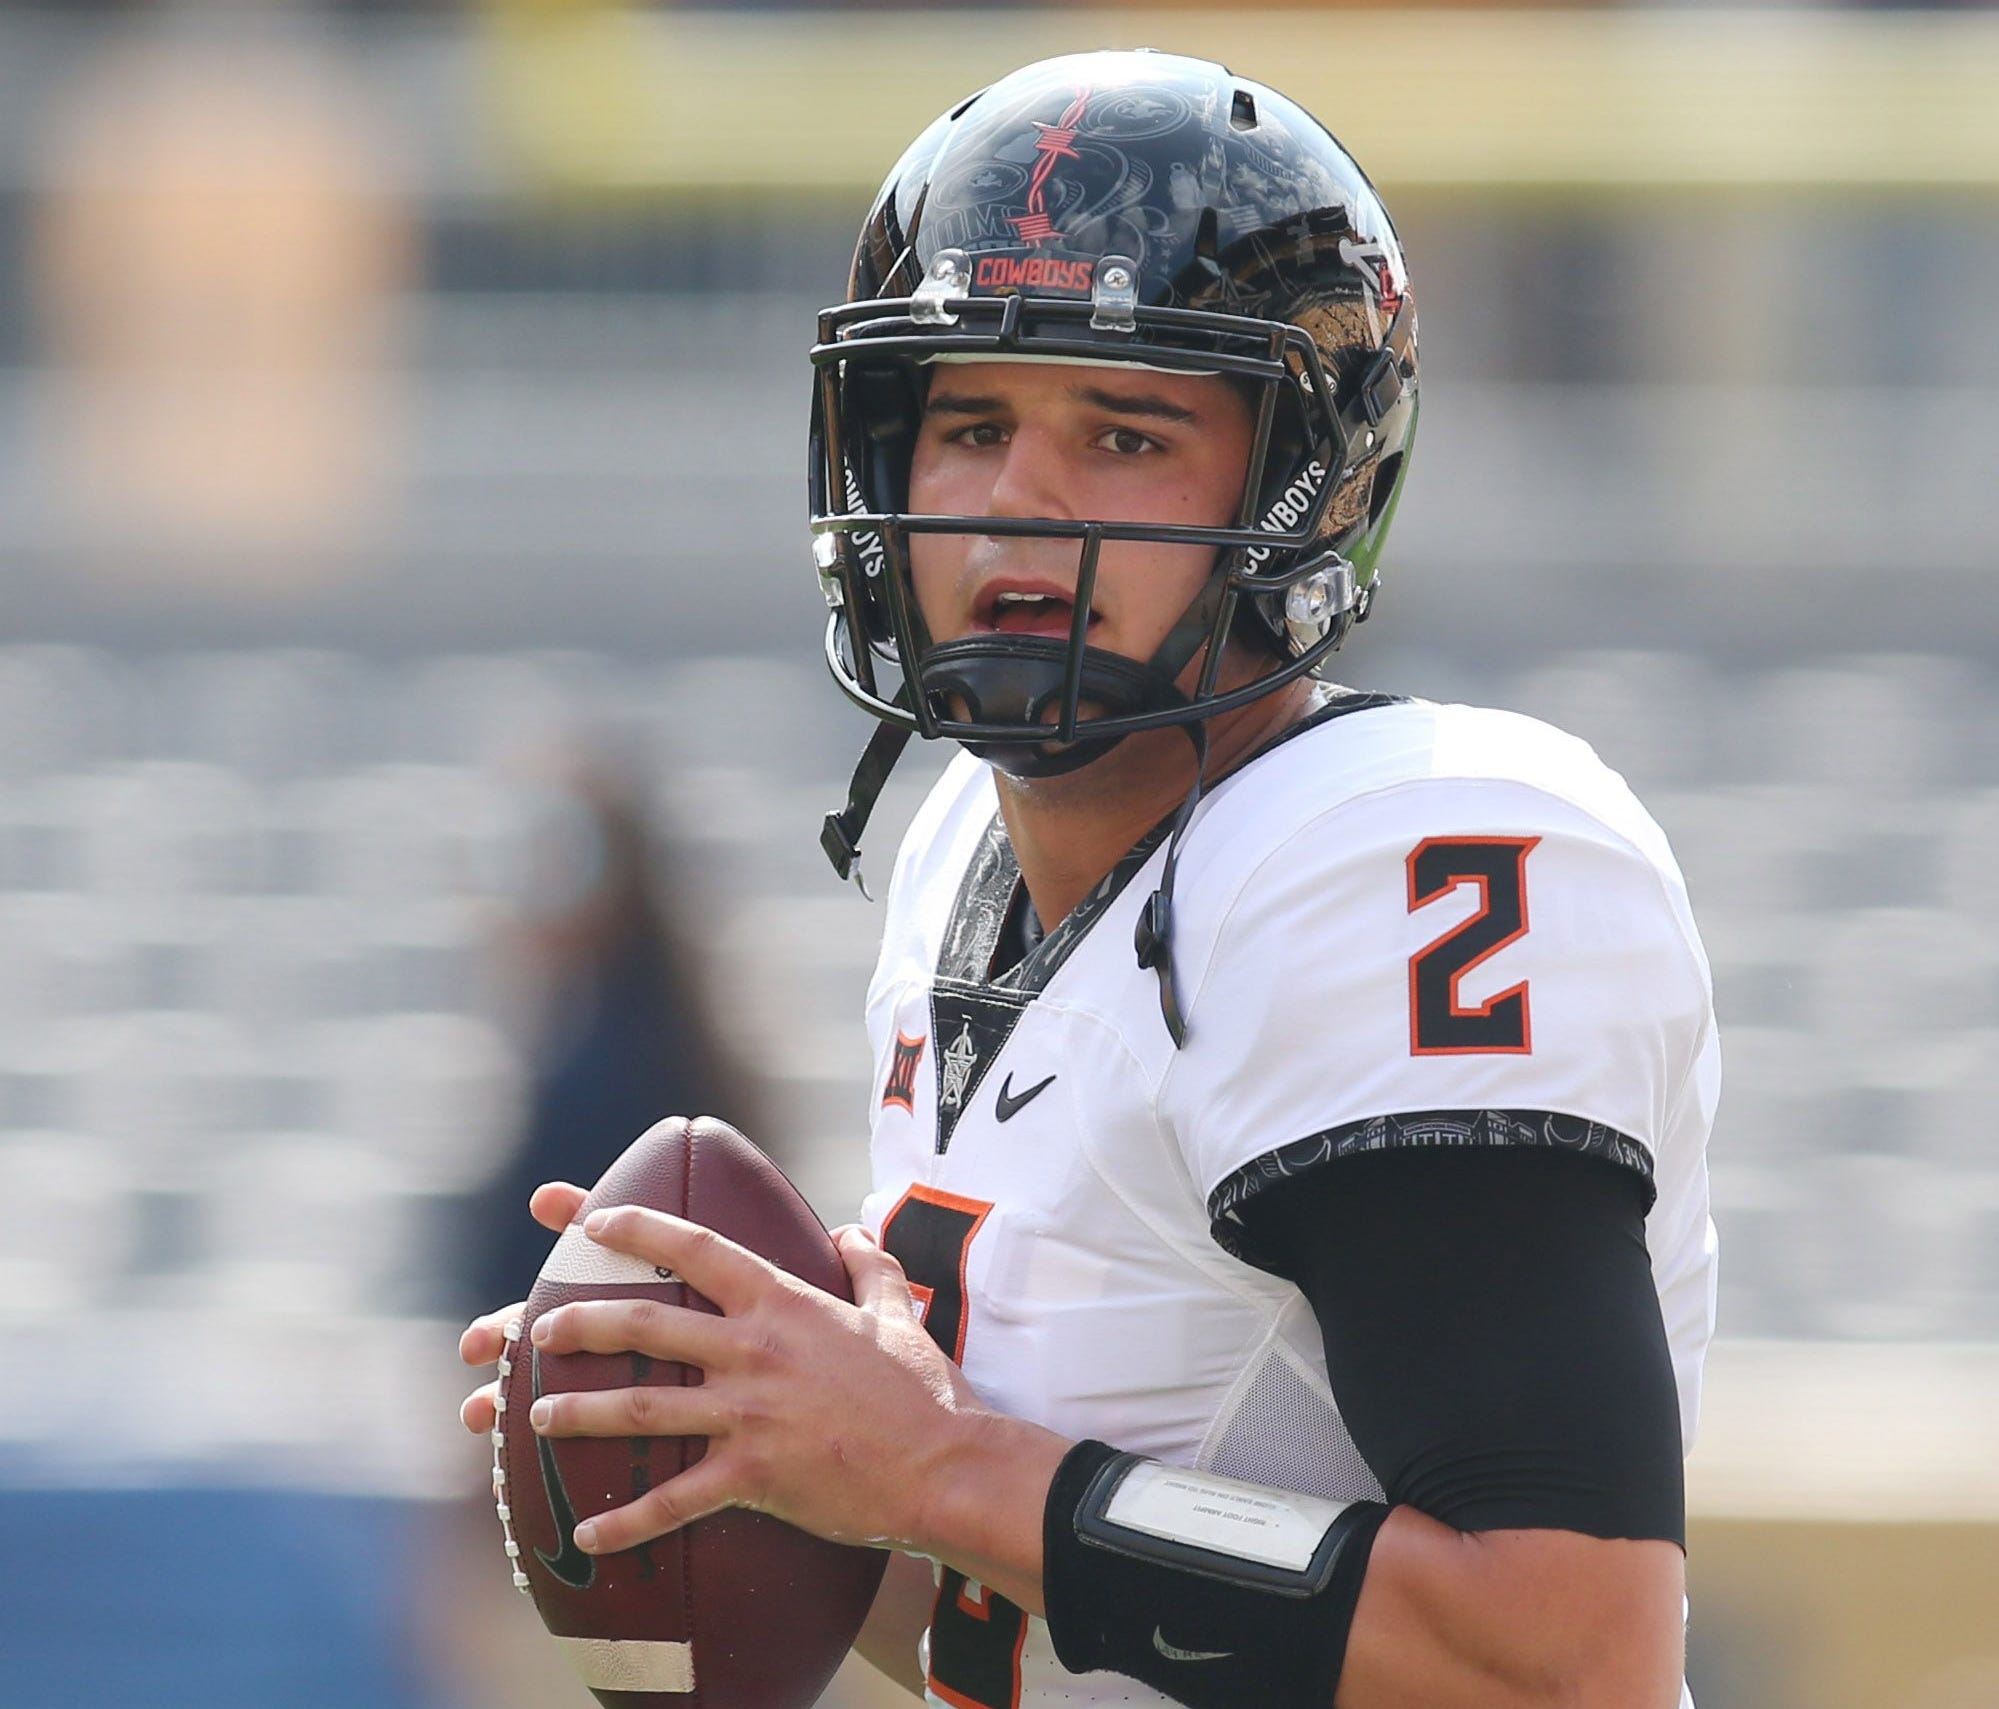 Oklahoma State Cowboys quarterback Mason Rudolph (2) warms up before playing the Pittsburgh Panthers against at Heinz Field.